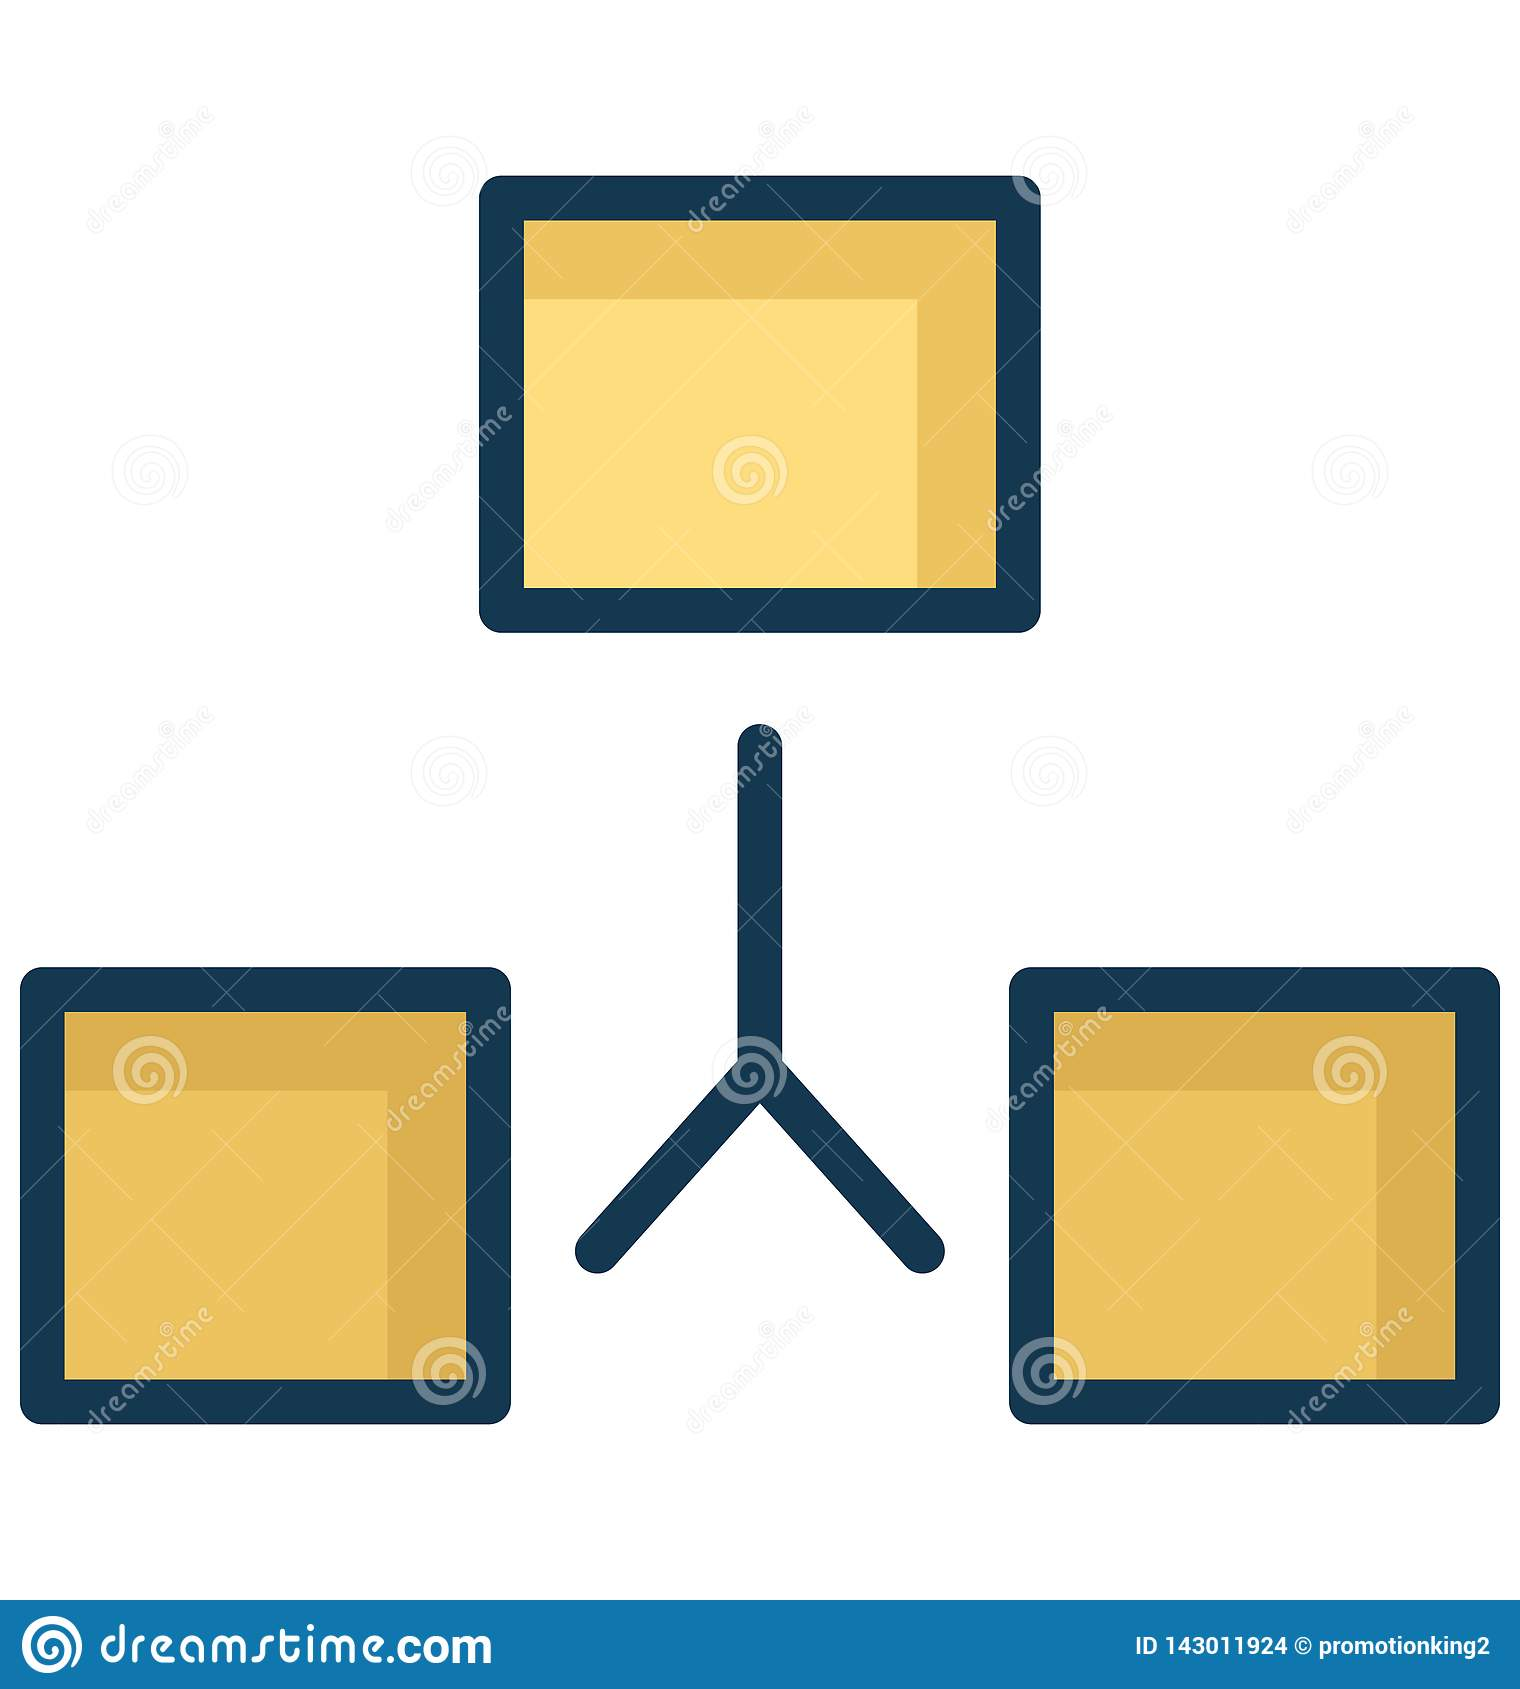 App Isolated Vector Icon which can easily modify or edit